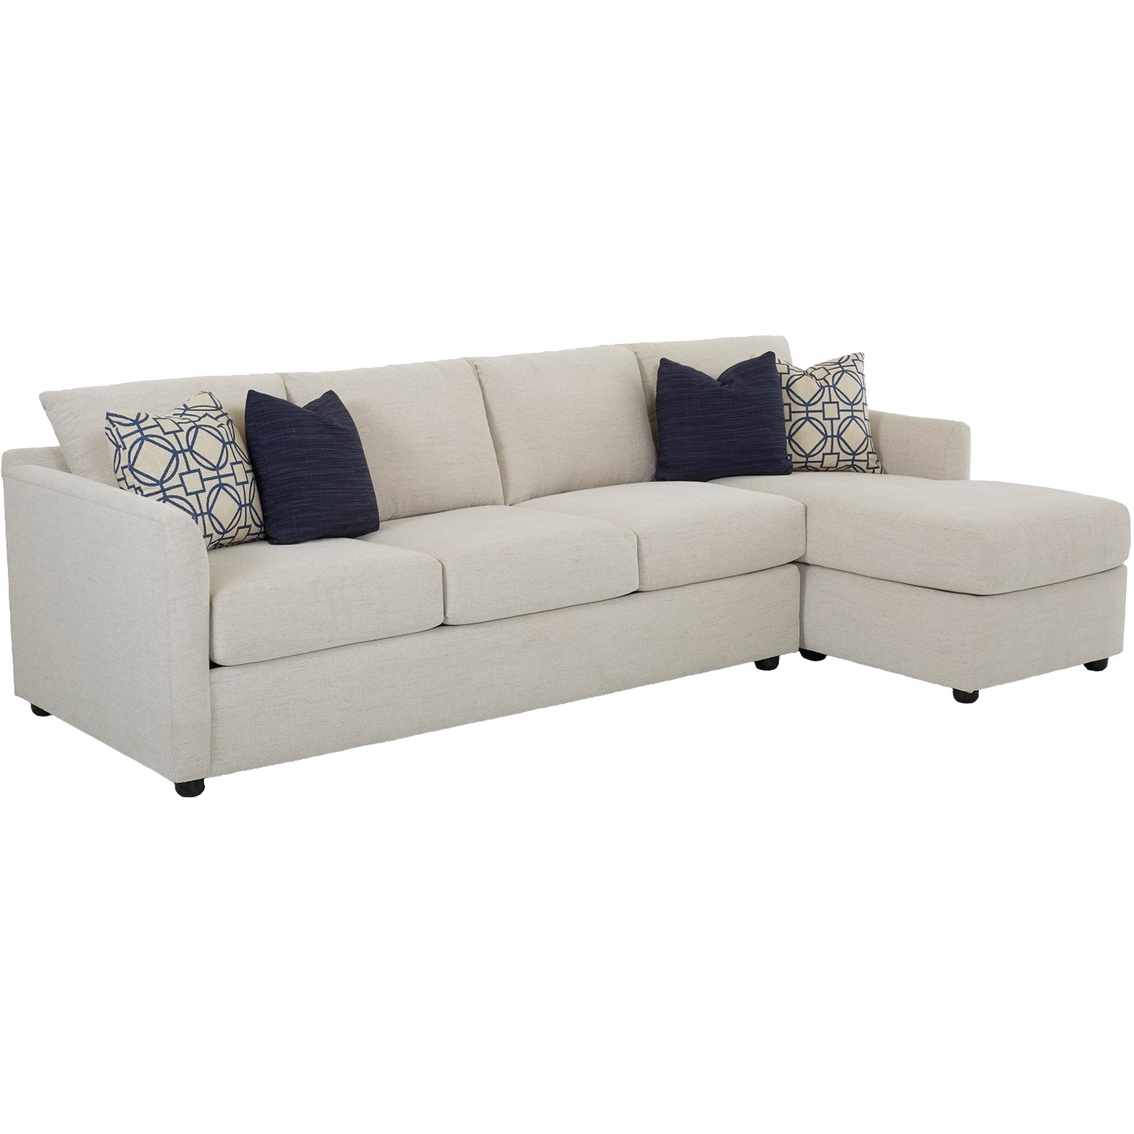 sleeper sofas atlanta light gray fabric klaussner 2 pc sectional laf queen raf corner sofa curious pearl